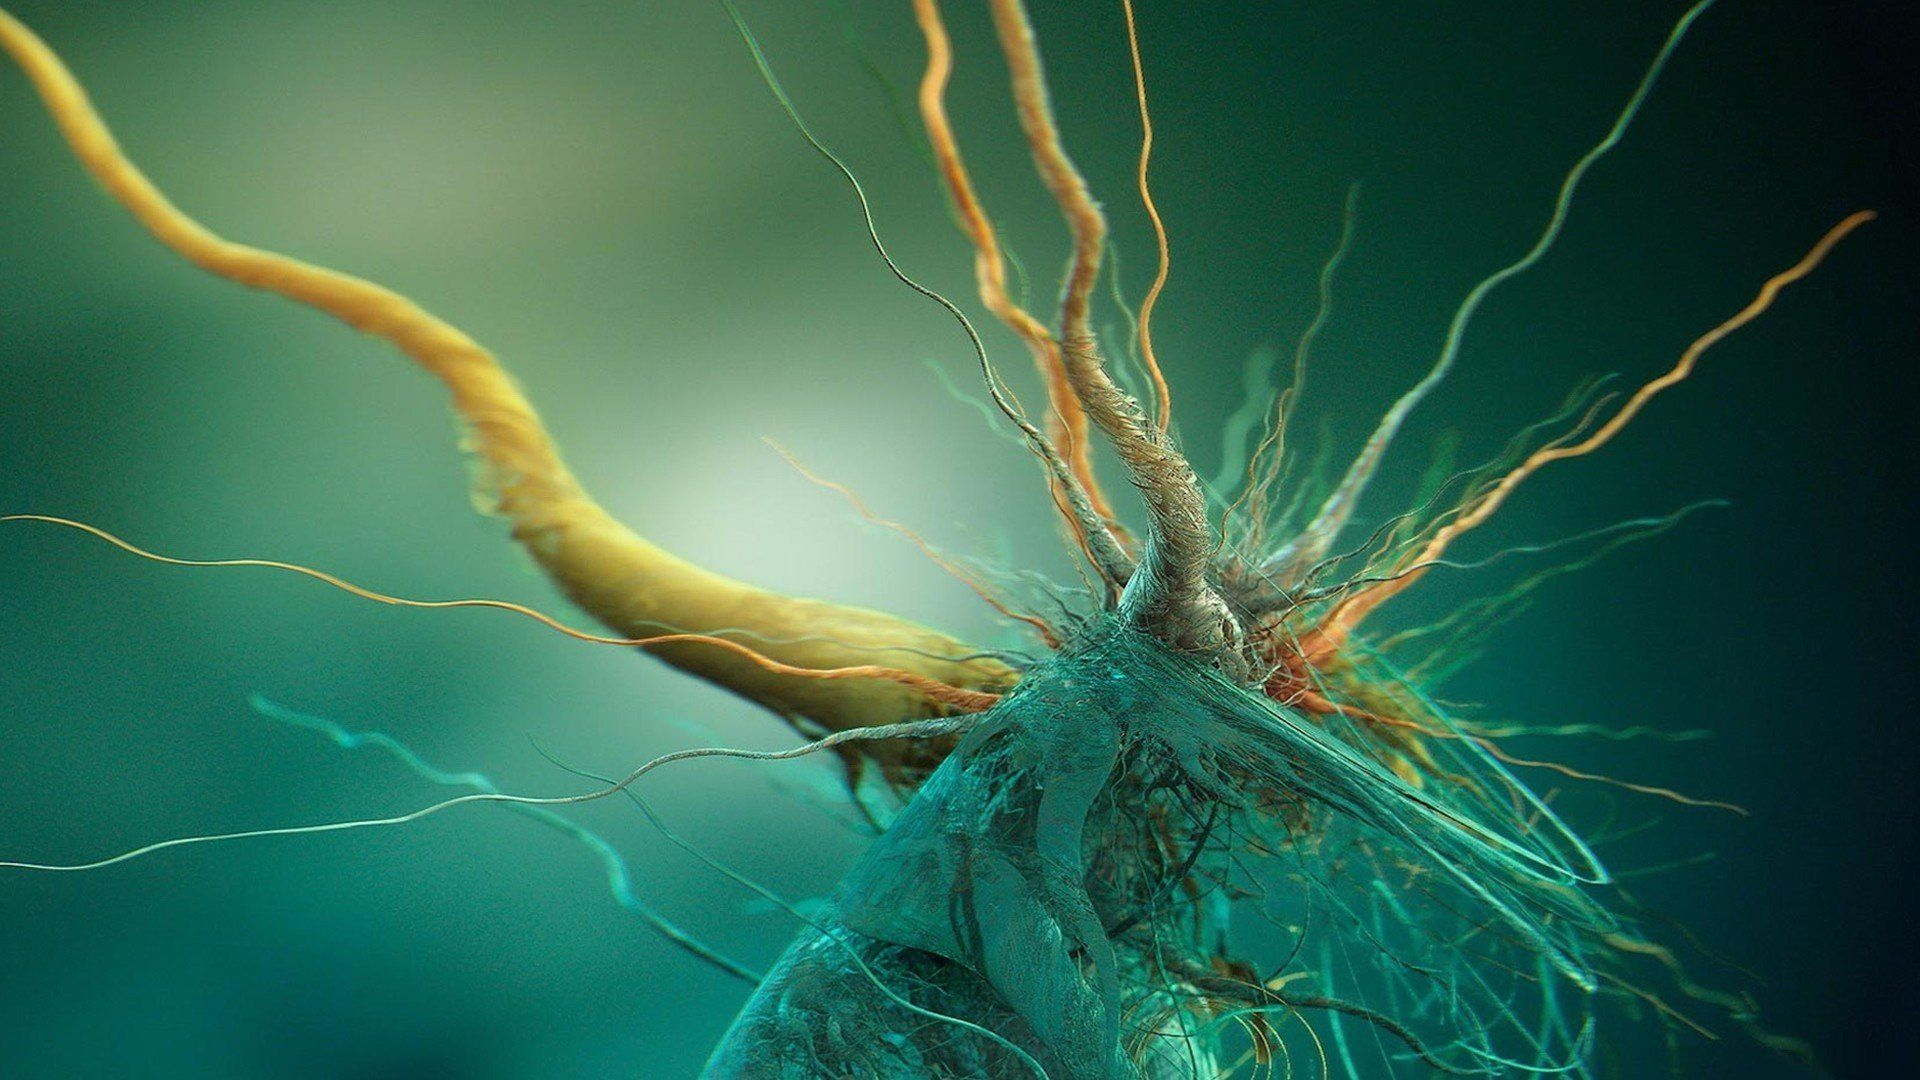 Nerves Wallpaper Background Nikon Small World Abstract